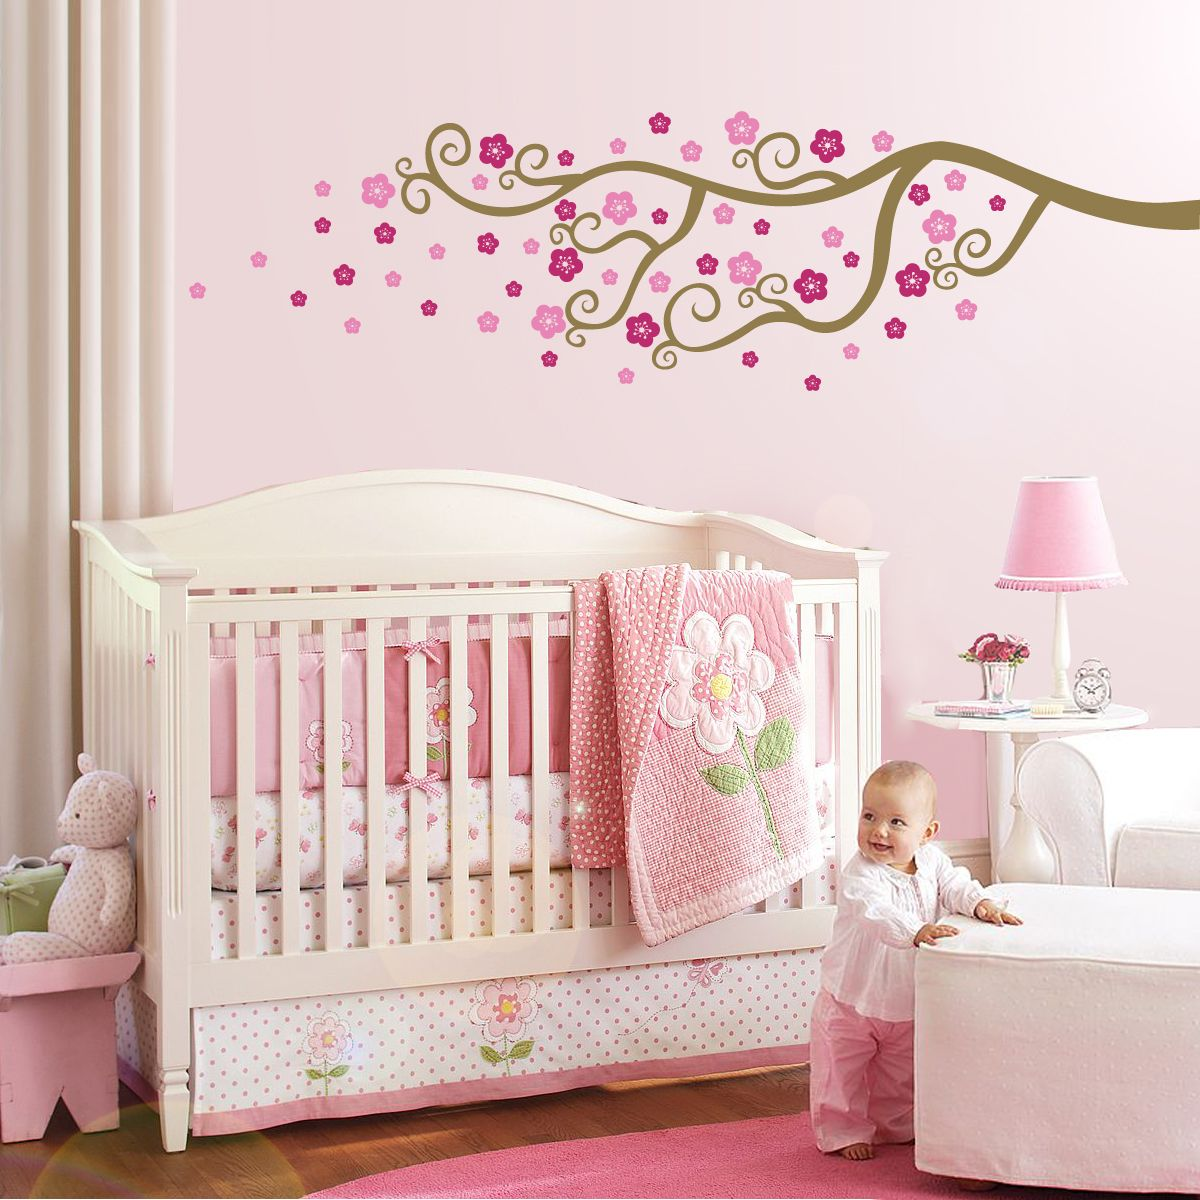 Creative paint ideas for kids bedroom captivating pink Kids room wall painting design